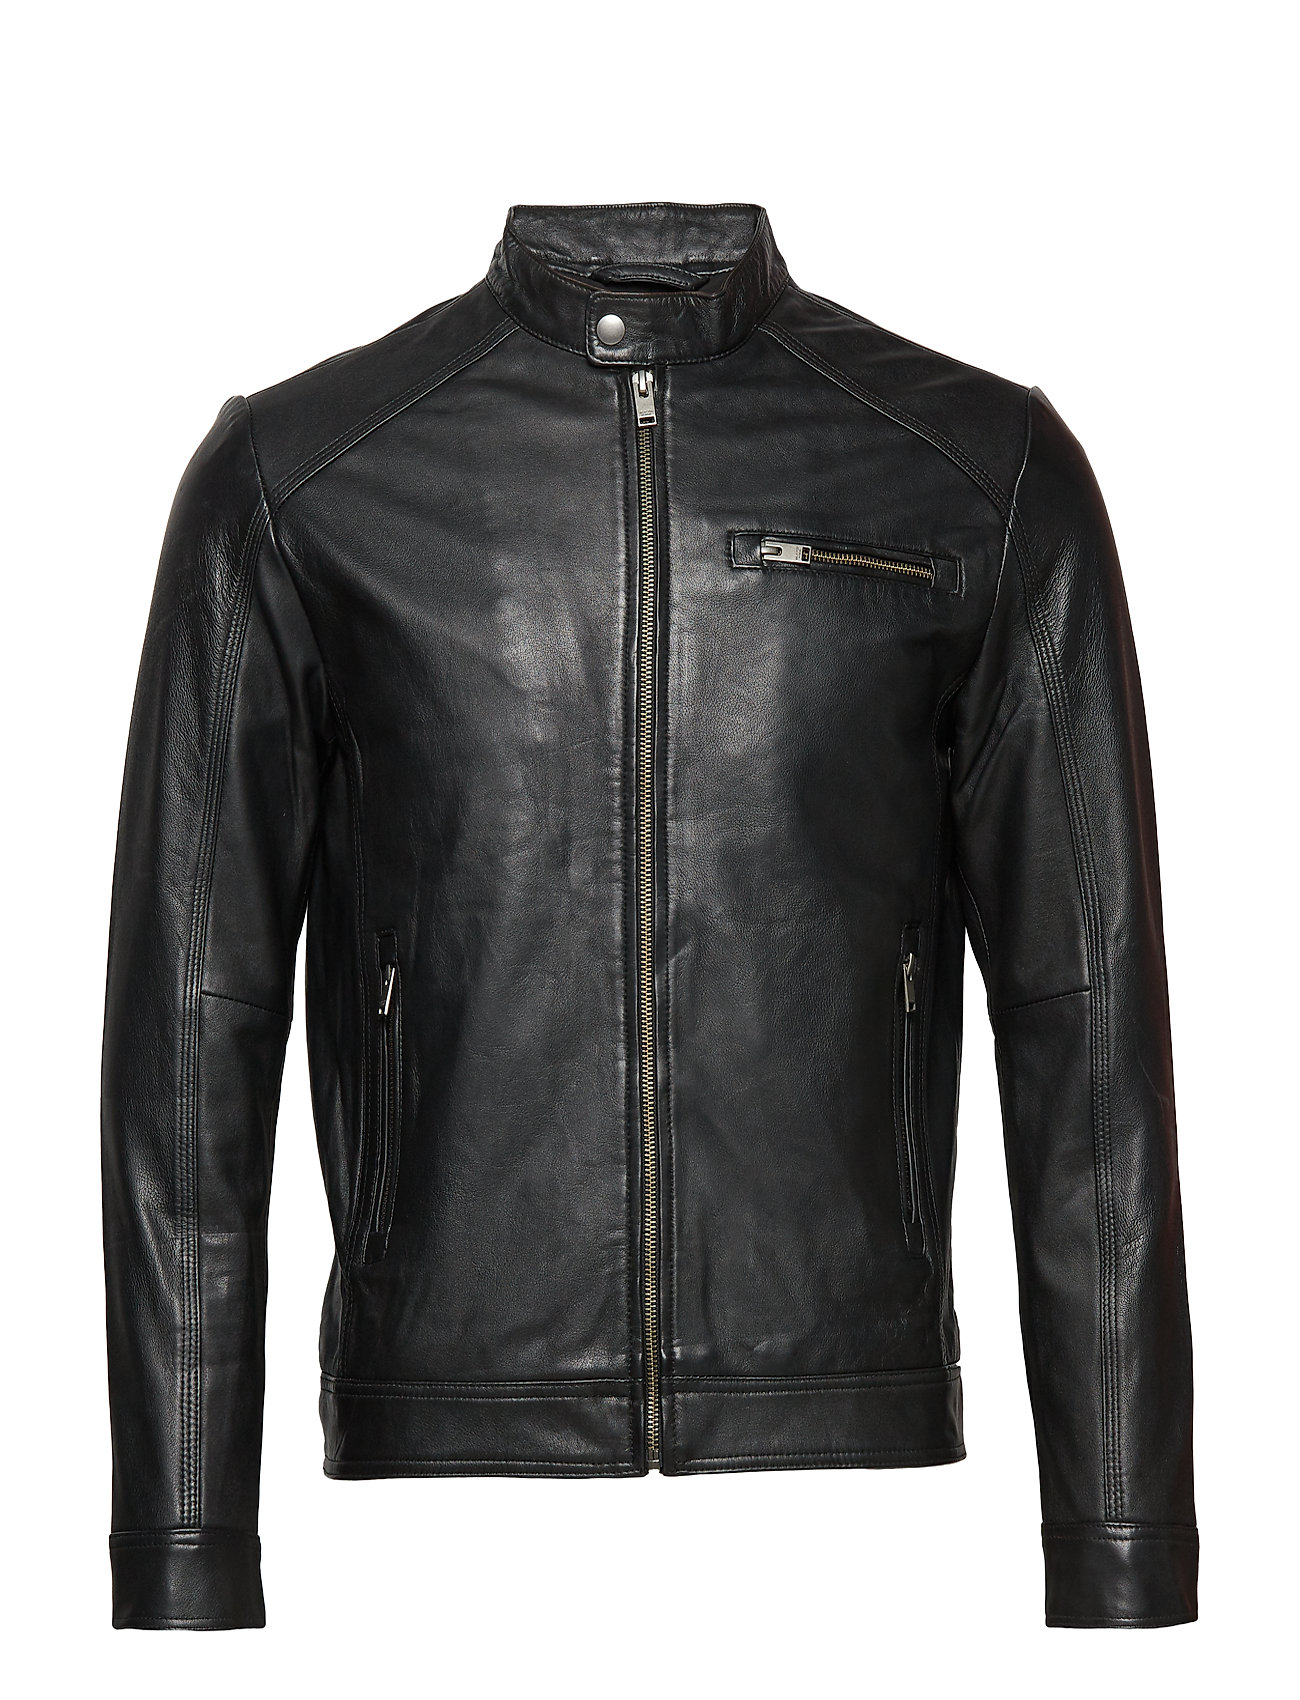 Selected Homme SLH C-01 CLASSIC LEATHER JACKET W NOOS - BLACK